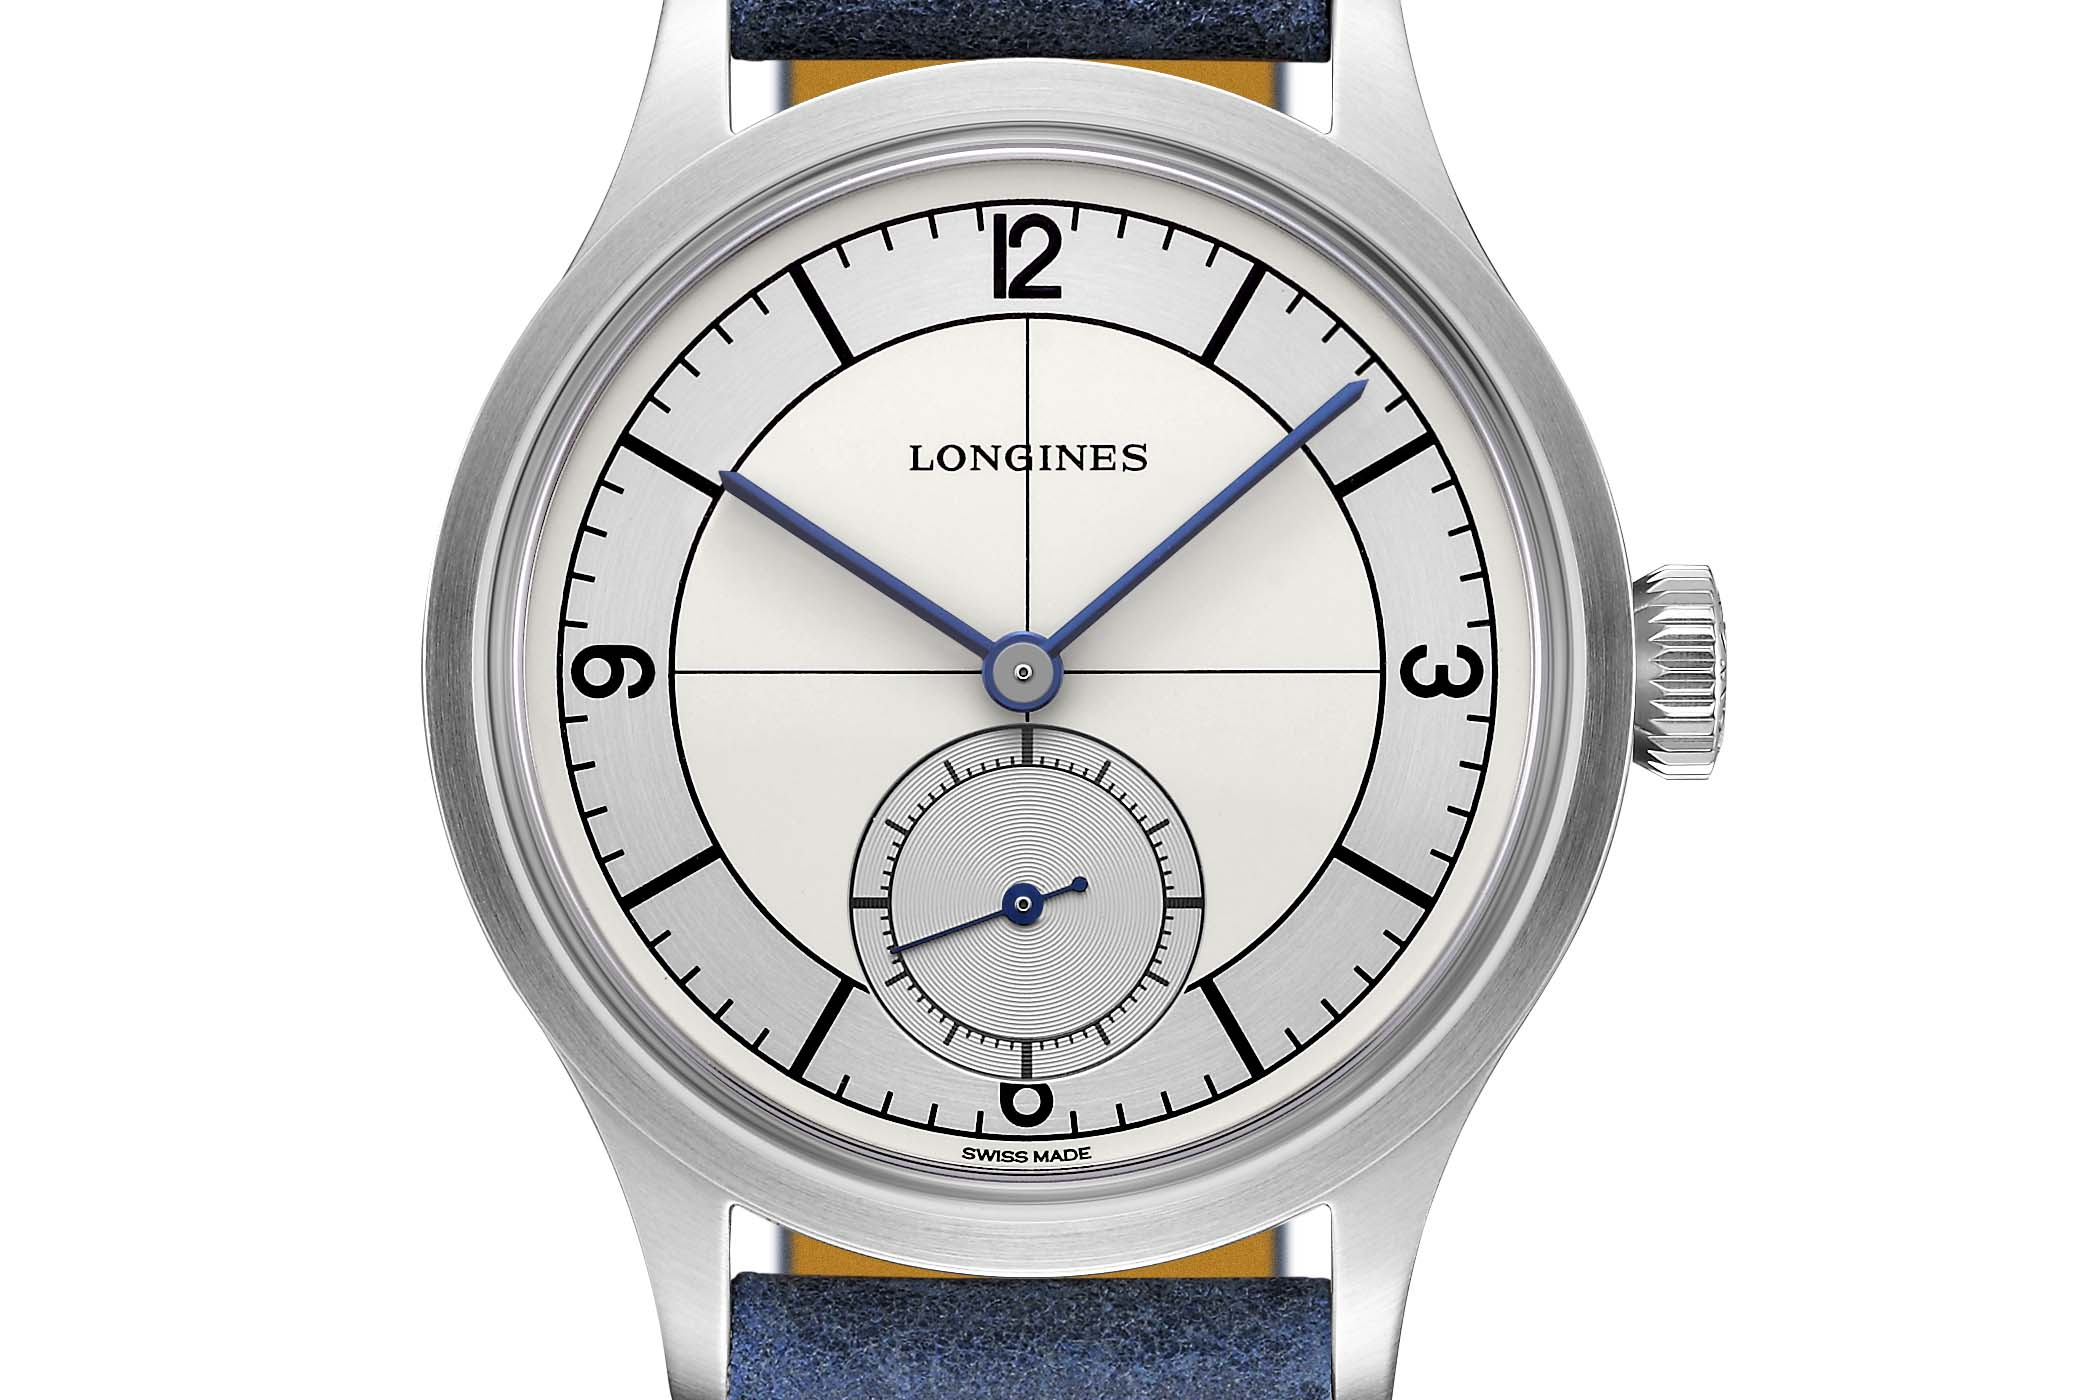 Longines Heritage Classic Sector Dial L2.828.4.73.0